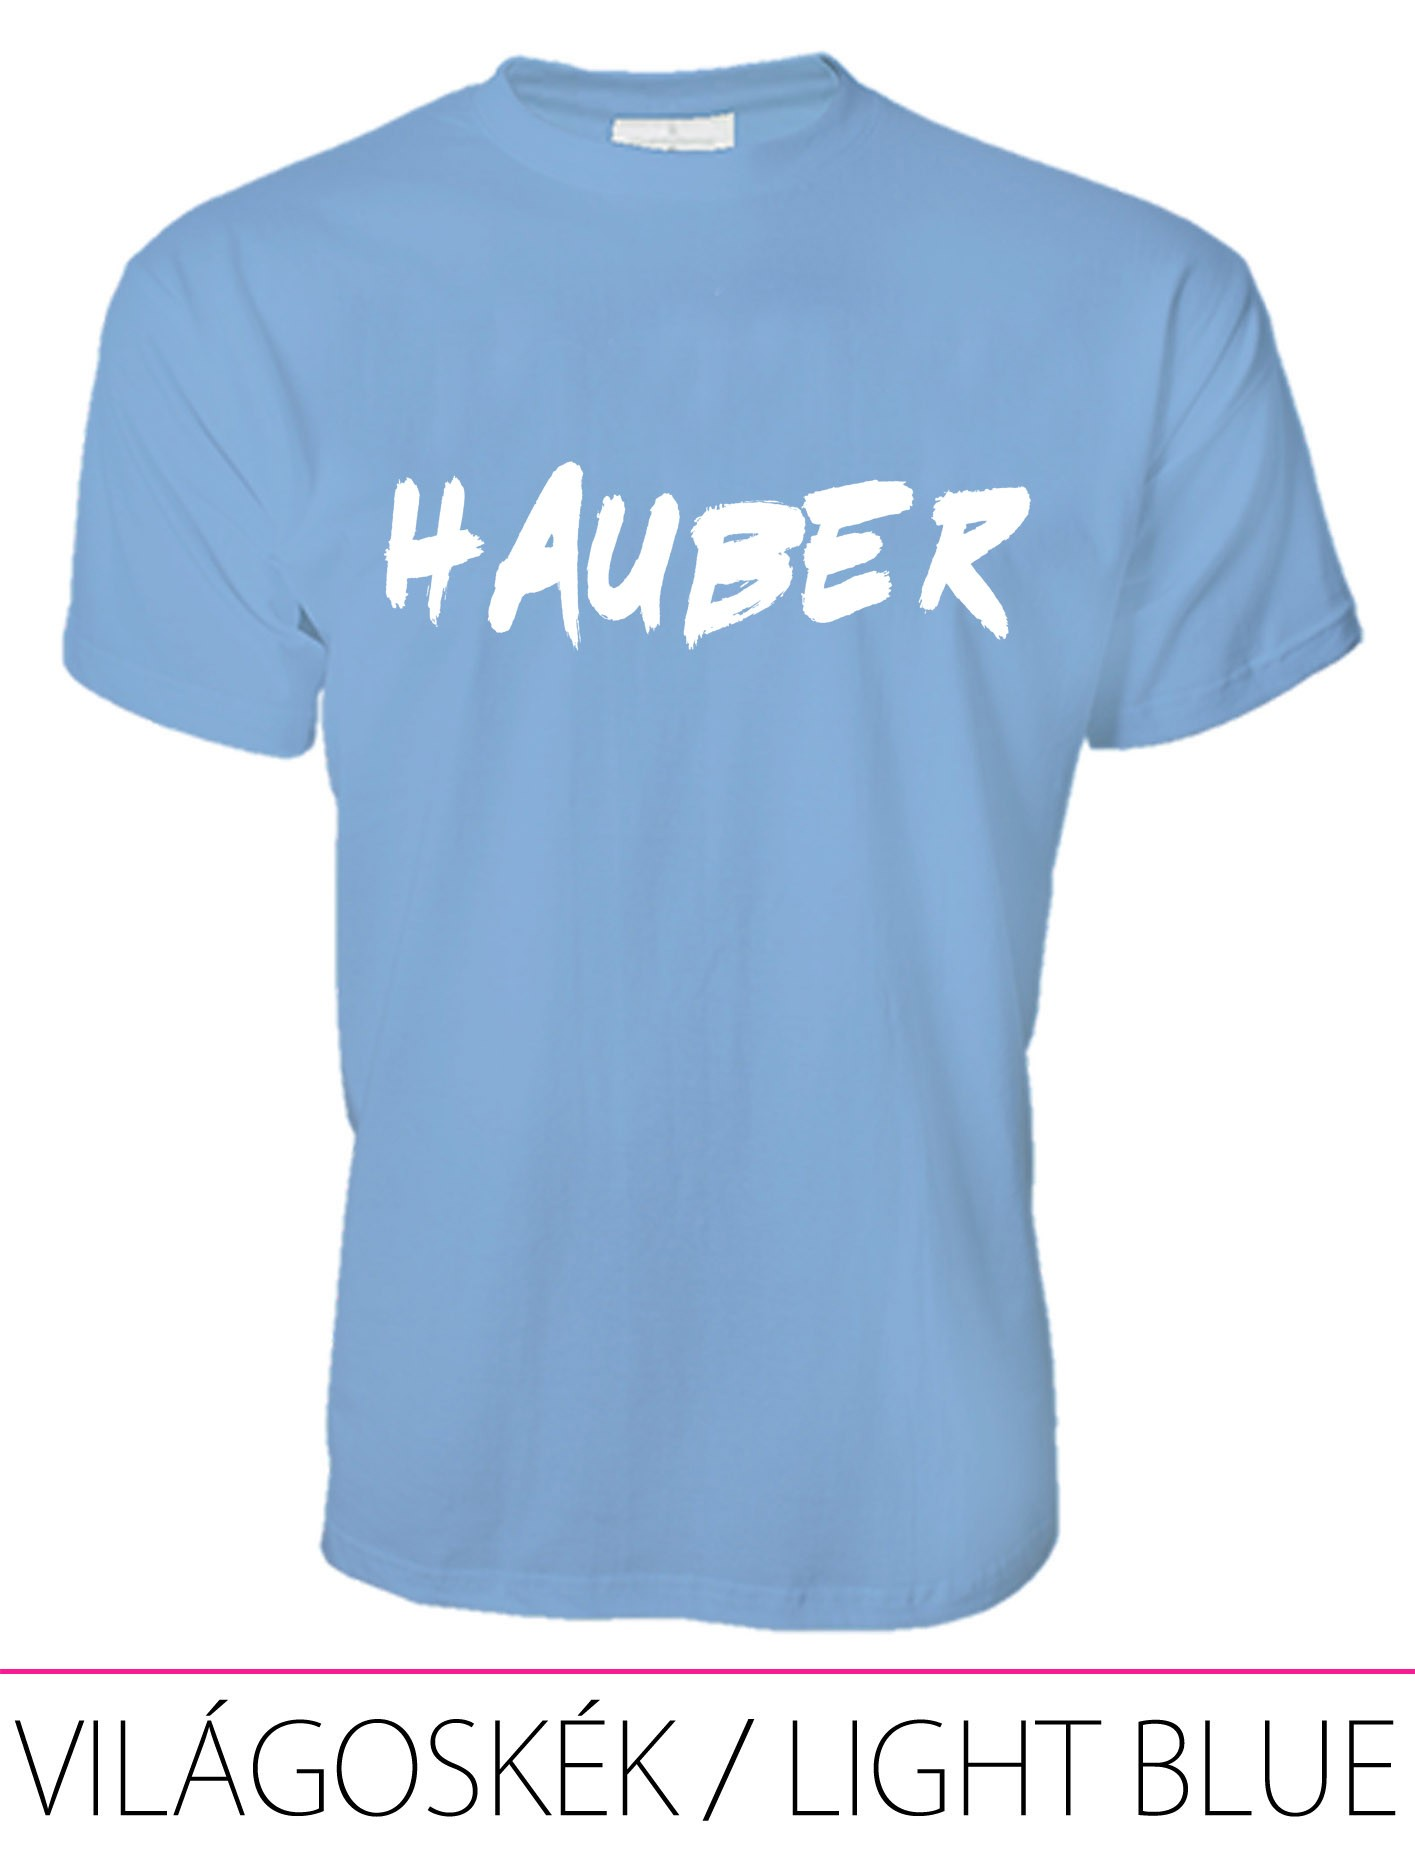 MEN PREMIUM CREW NECK T-SHIRT HAUBER LIGHT BLUE